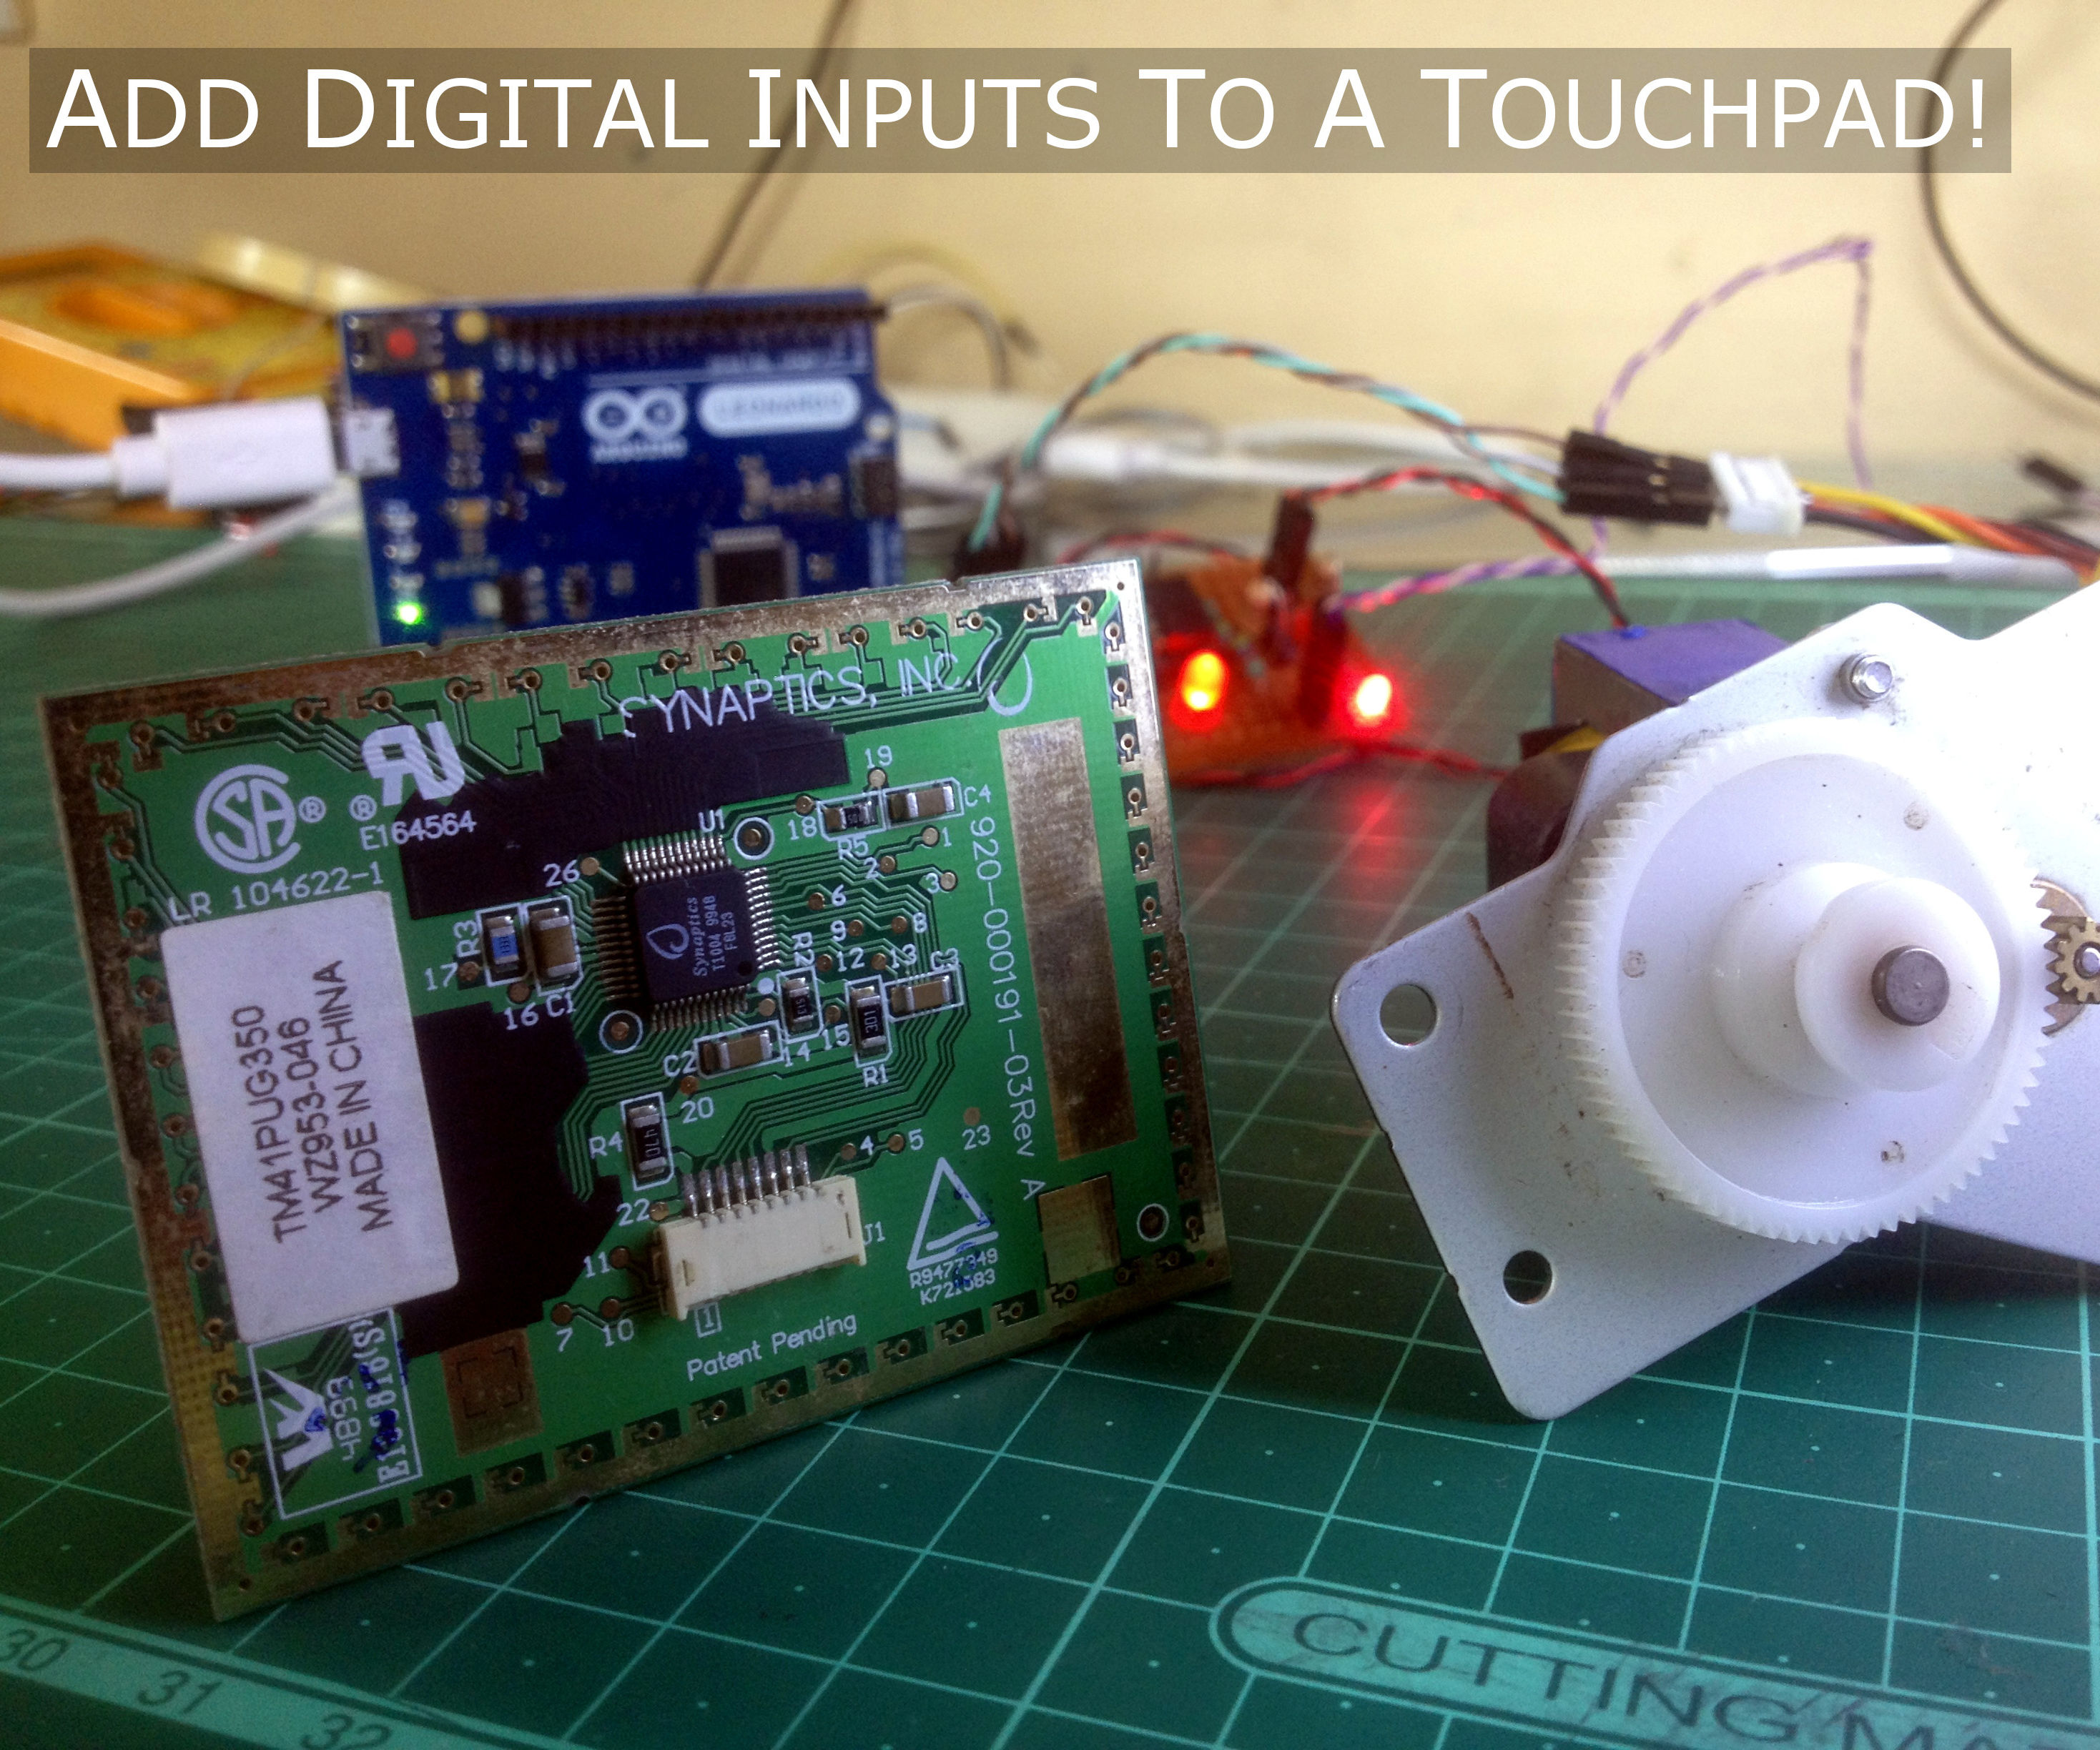 A Cool Touchpad Hack for Arduino Projects!